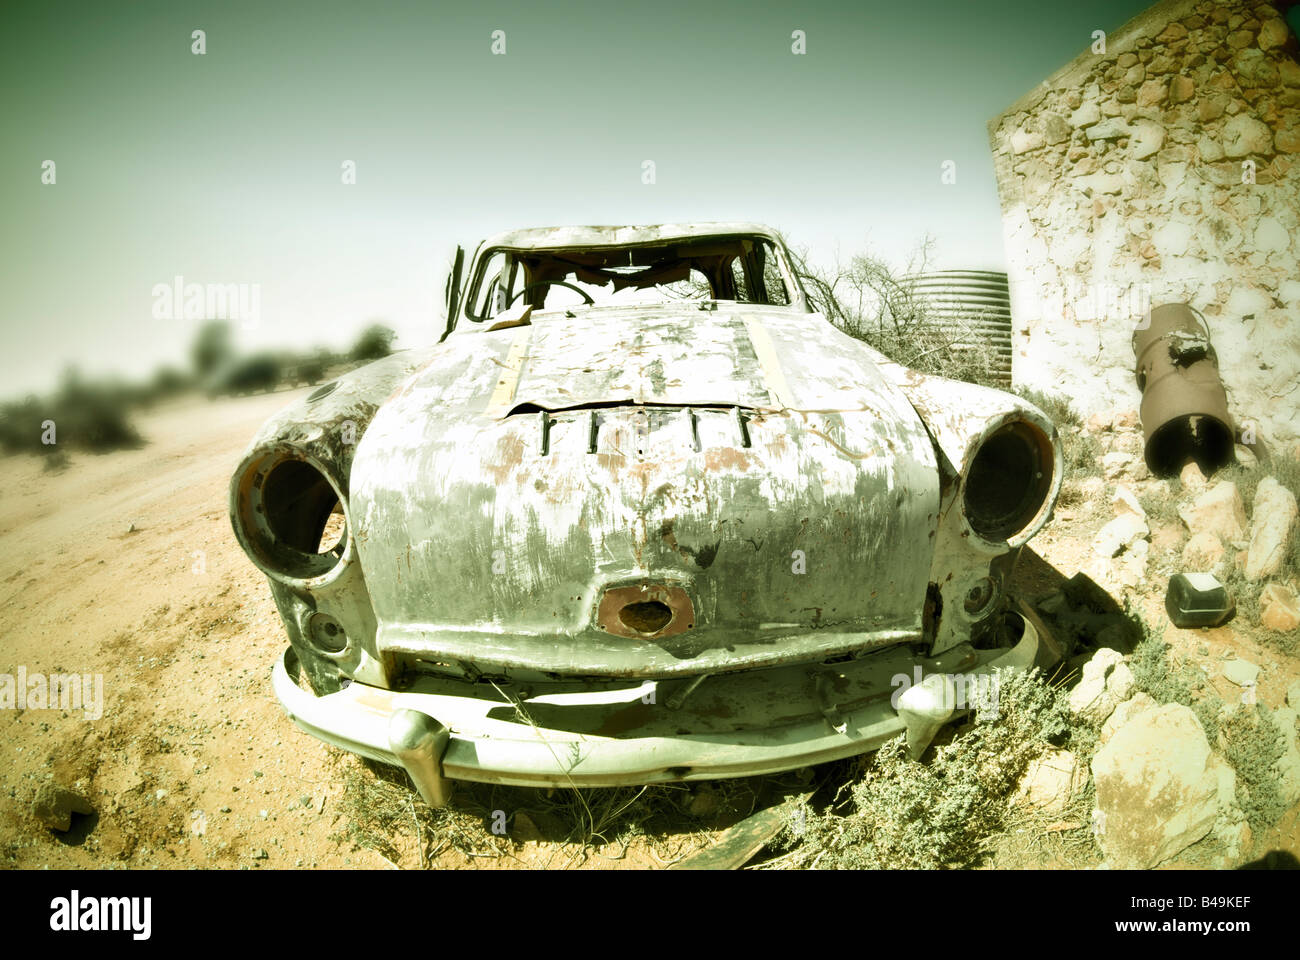 cross processed image of an old car in the desert - Stock Image